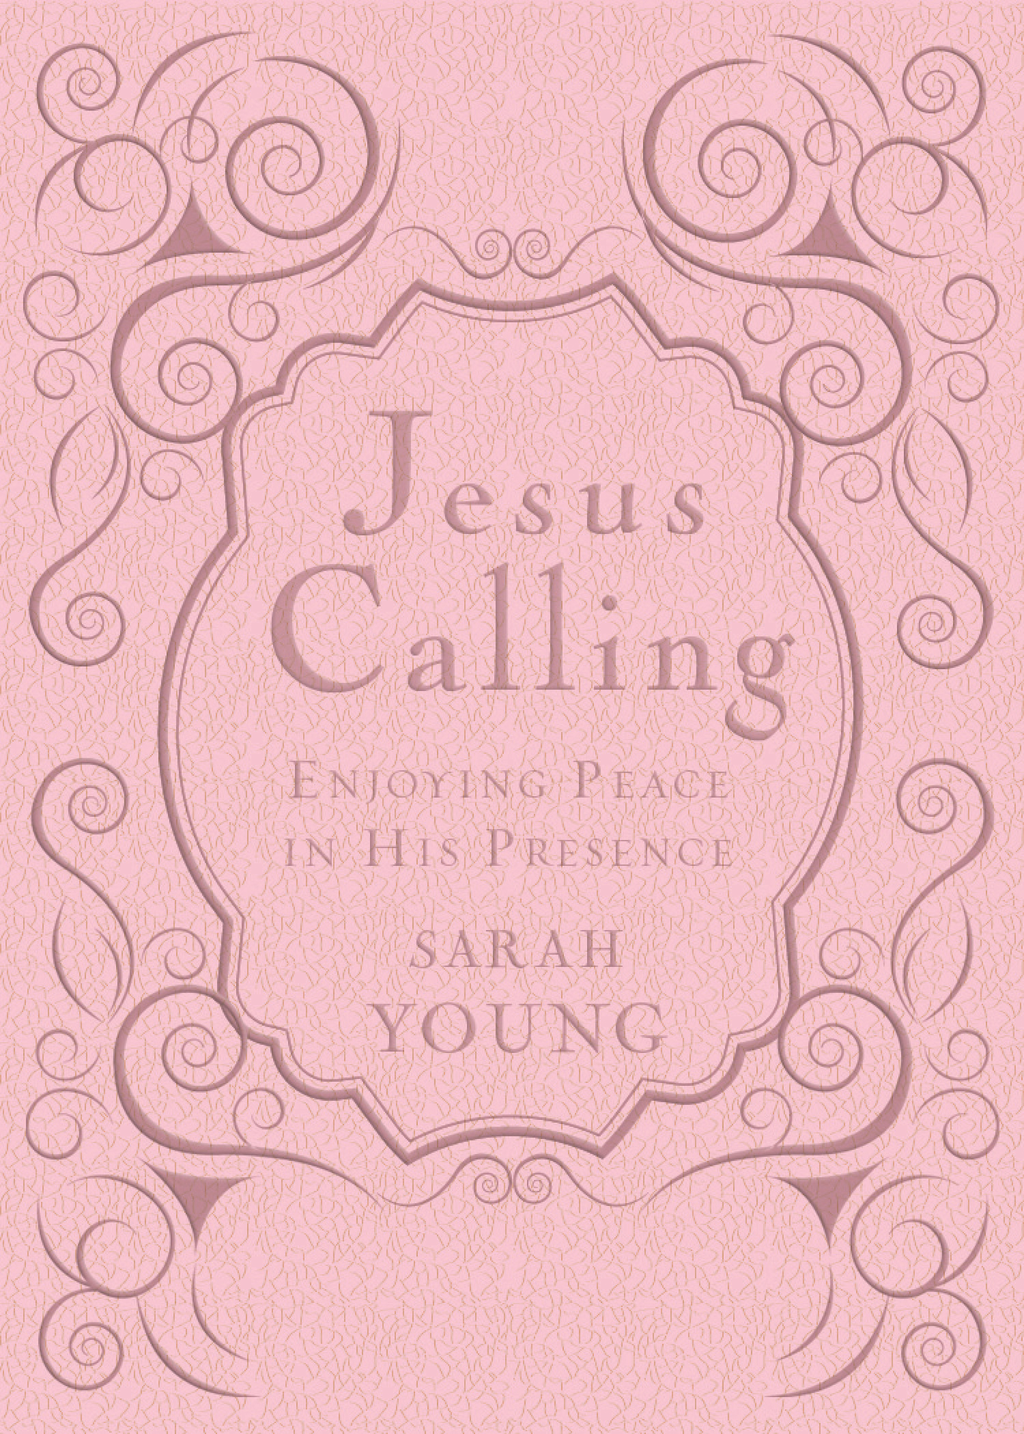 Jesus Calling - Women's Edition